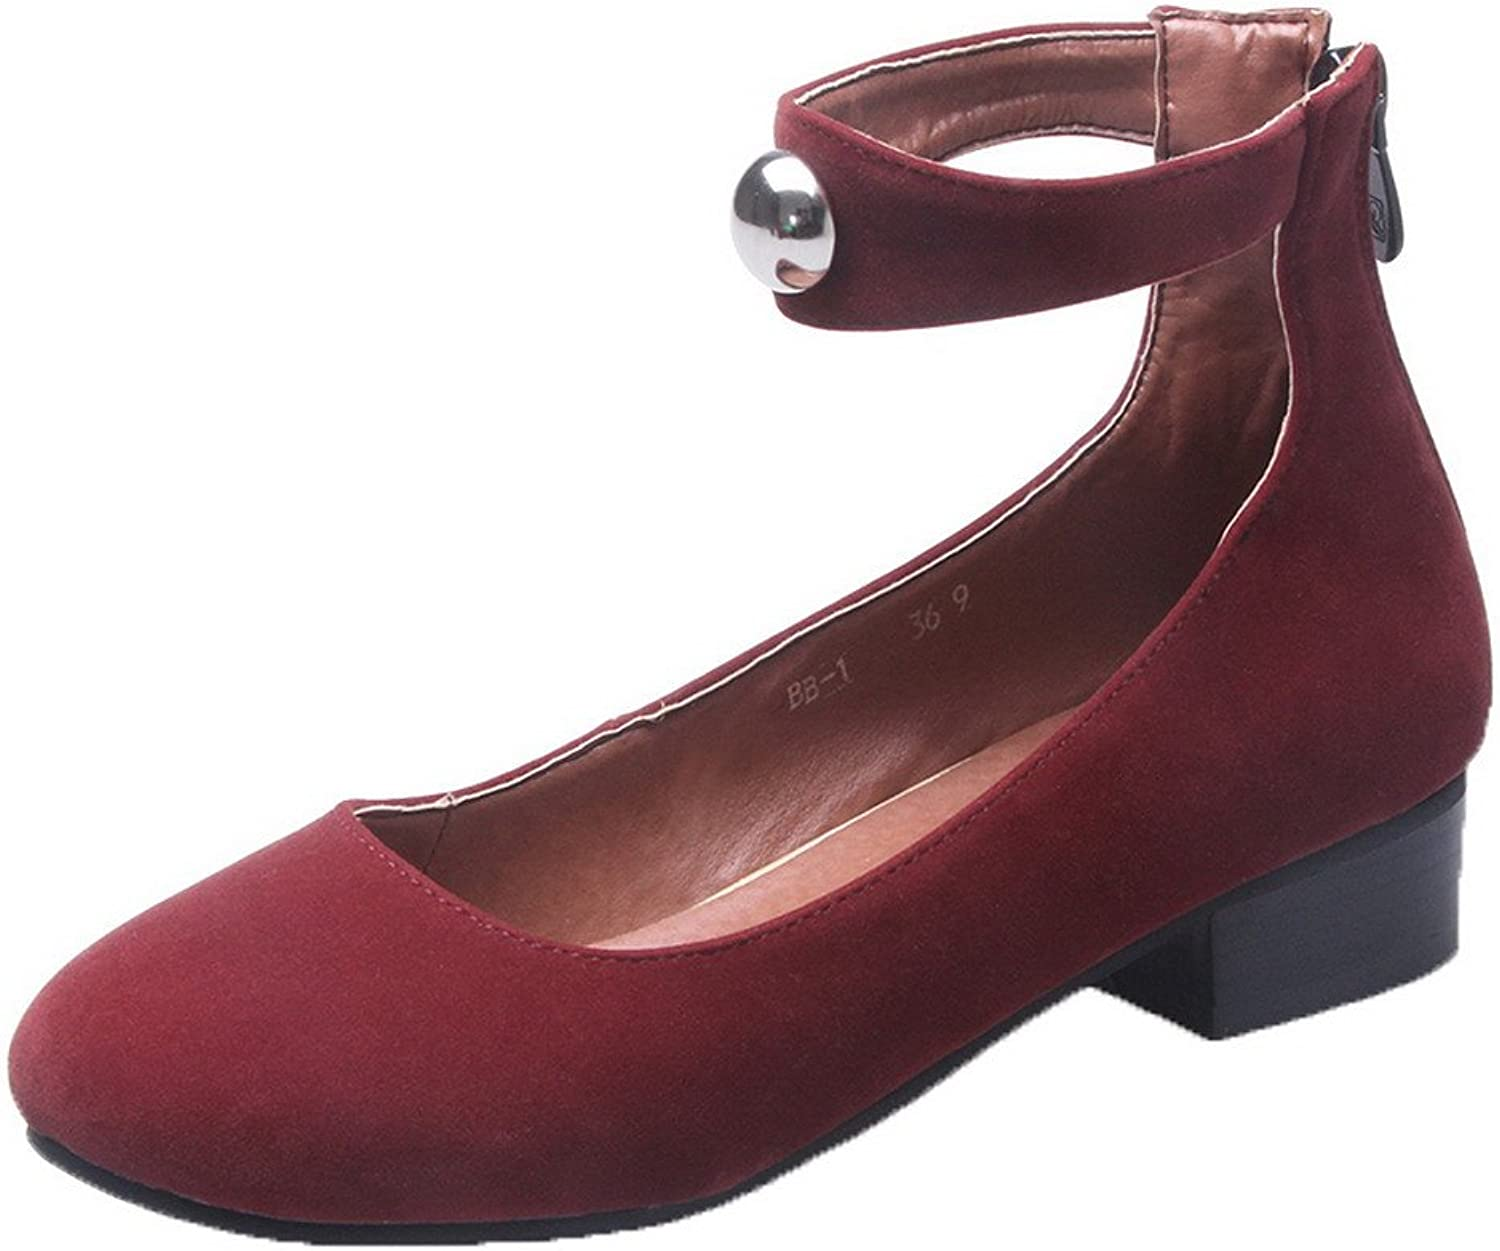 AllhqFashion Women's Frosted Zipper Round-Toe Low-Heels Solid Pumps-shoes